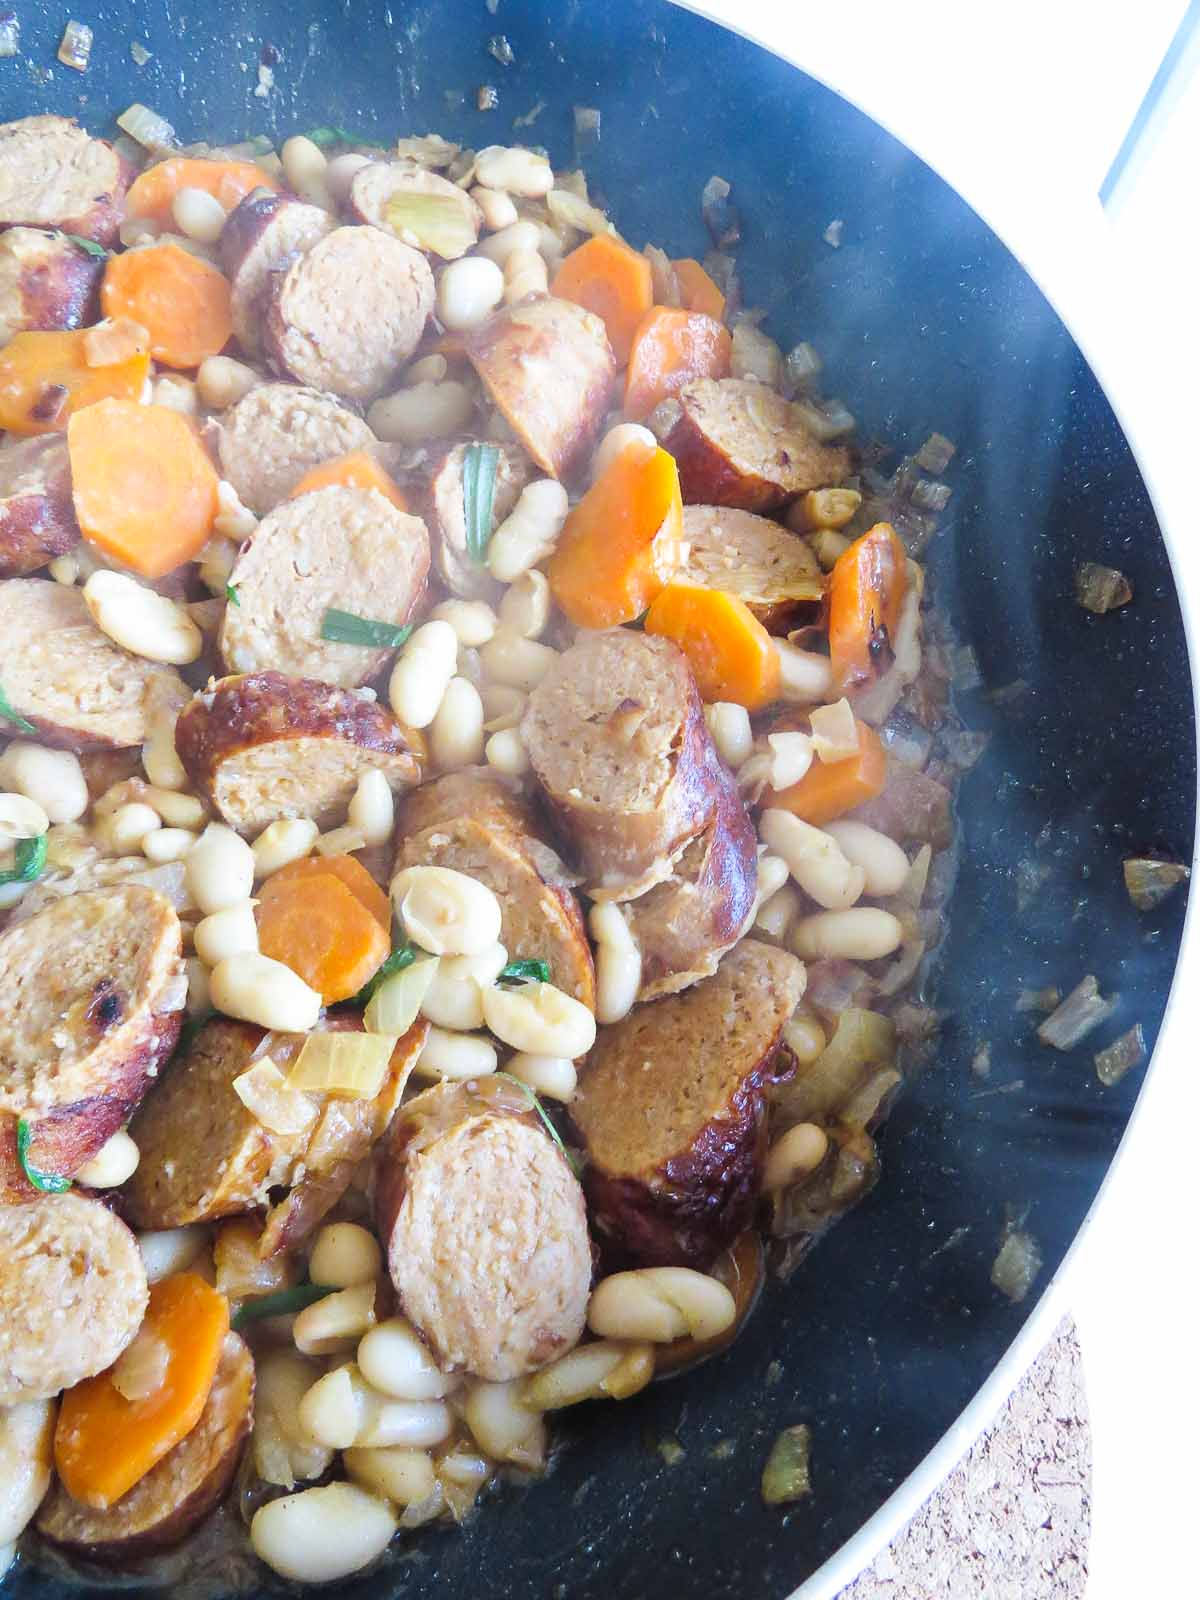 Sausage and Cannellini Beans in White Wine - Tied together with sautéed onions and carrots, this Sausage and Cannellini Bean in White Wine recipe has all the wonderful deliciousness cooking in one pan!